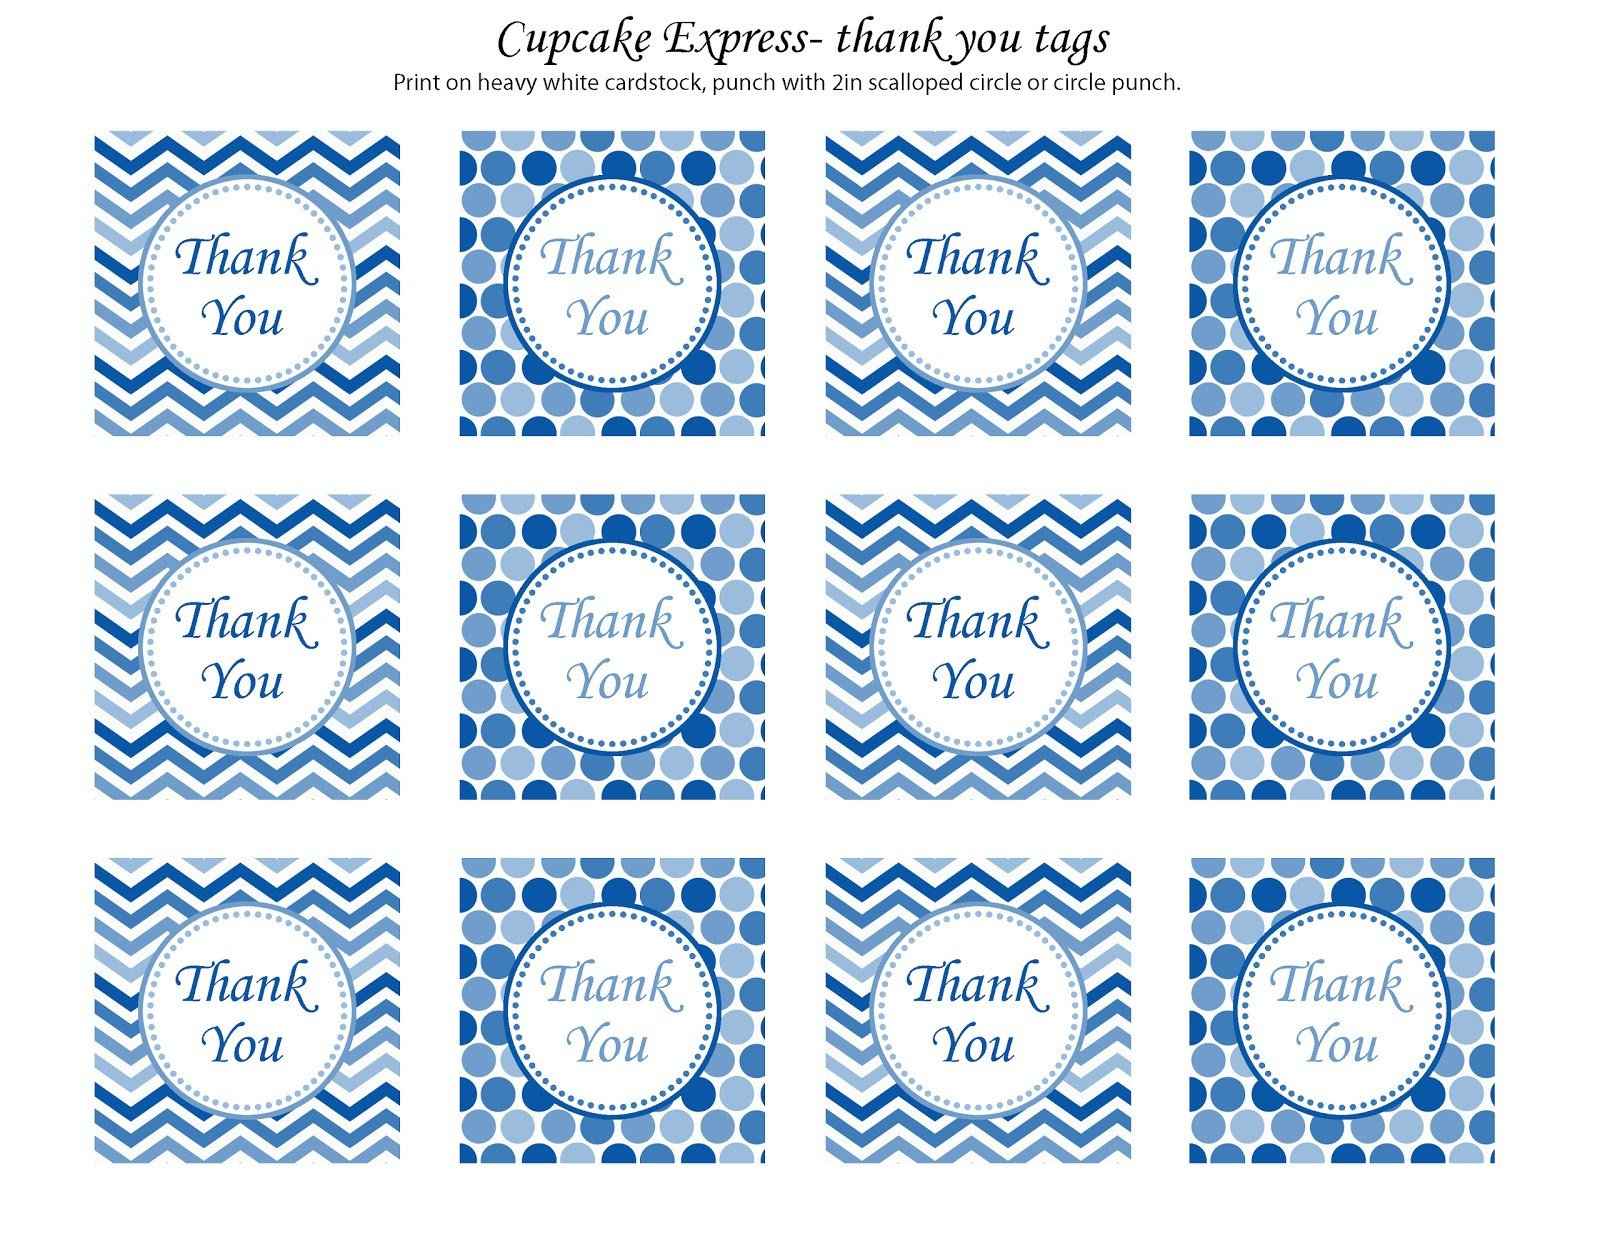 Thank You Printable Tags Thanks so Much to All My Fabulous Fans